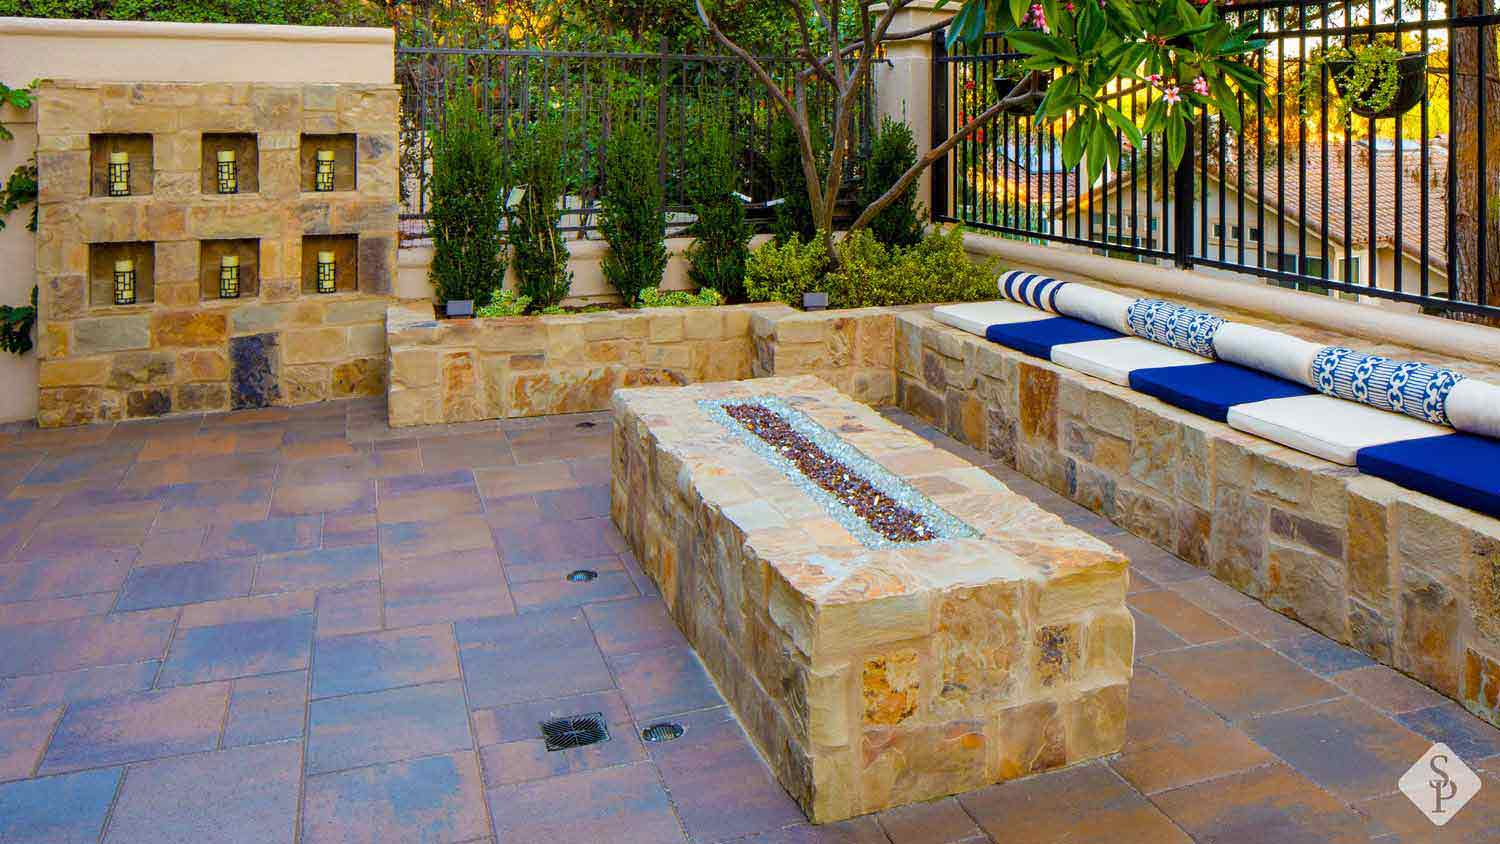 Having a functional outdoor space with a paver patio to spend time in is the best way to encourage outdoor leisure and activities.